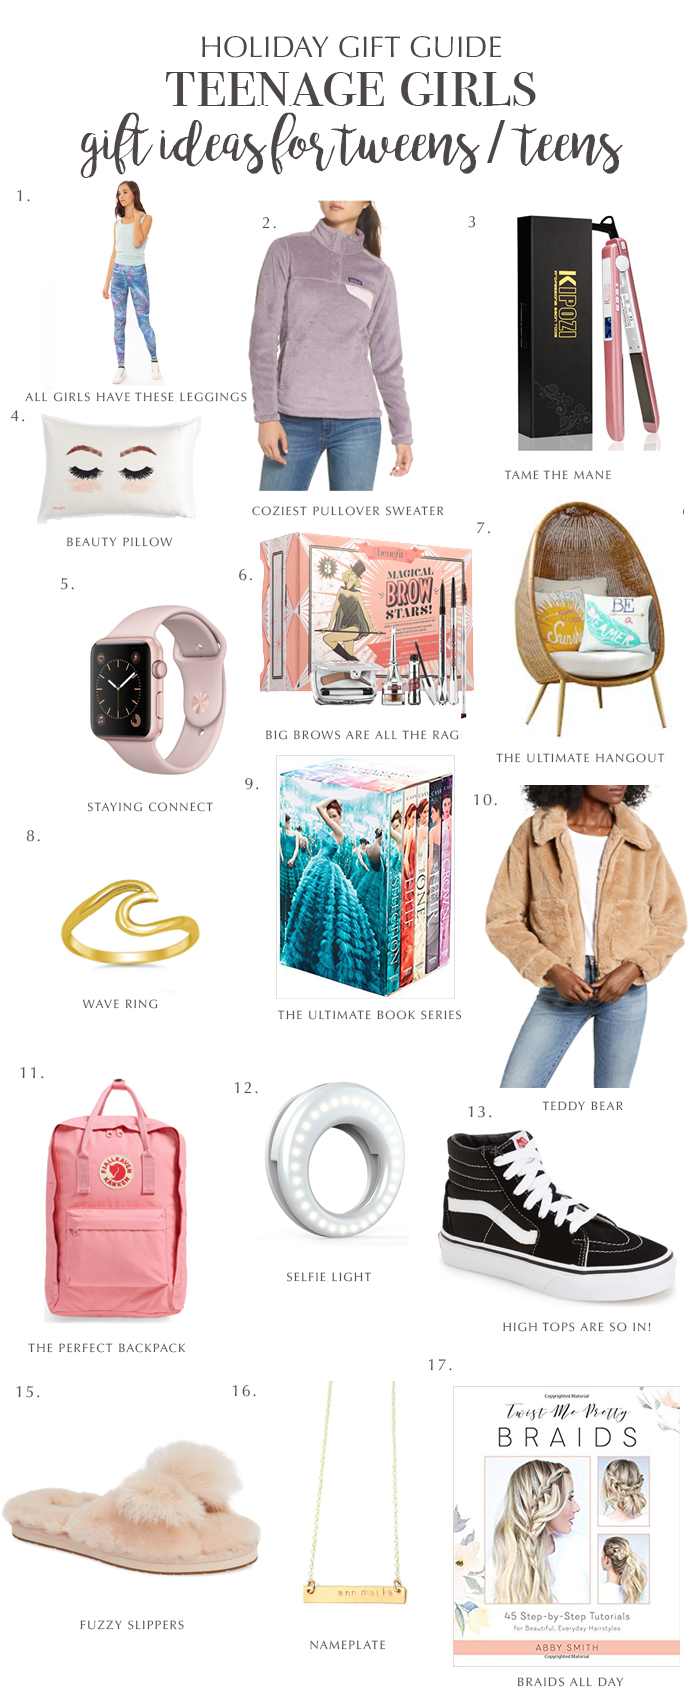 Look no further! The ultimate holiday gift guide for teen girls for cover all over your holiday shopping needs || Darling Darleen #holidaygiftguide #giftsforteengirls #darlingdarleen